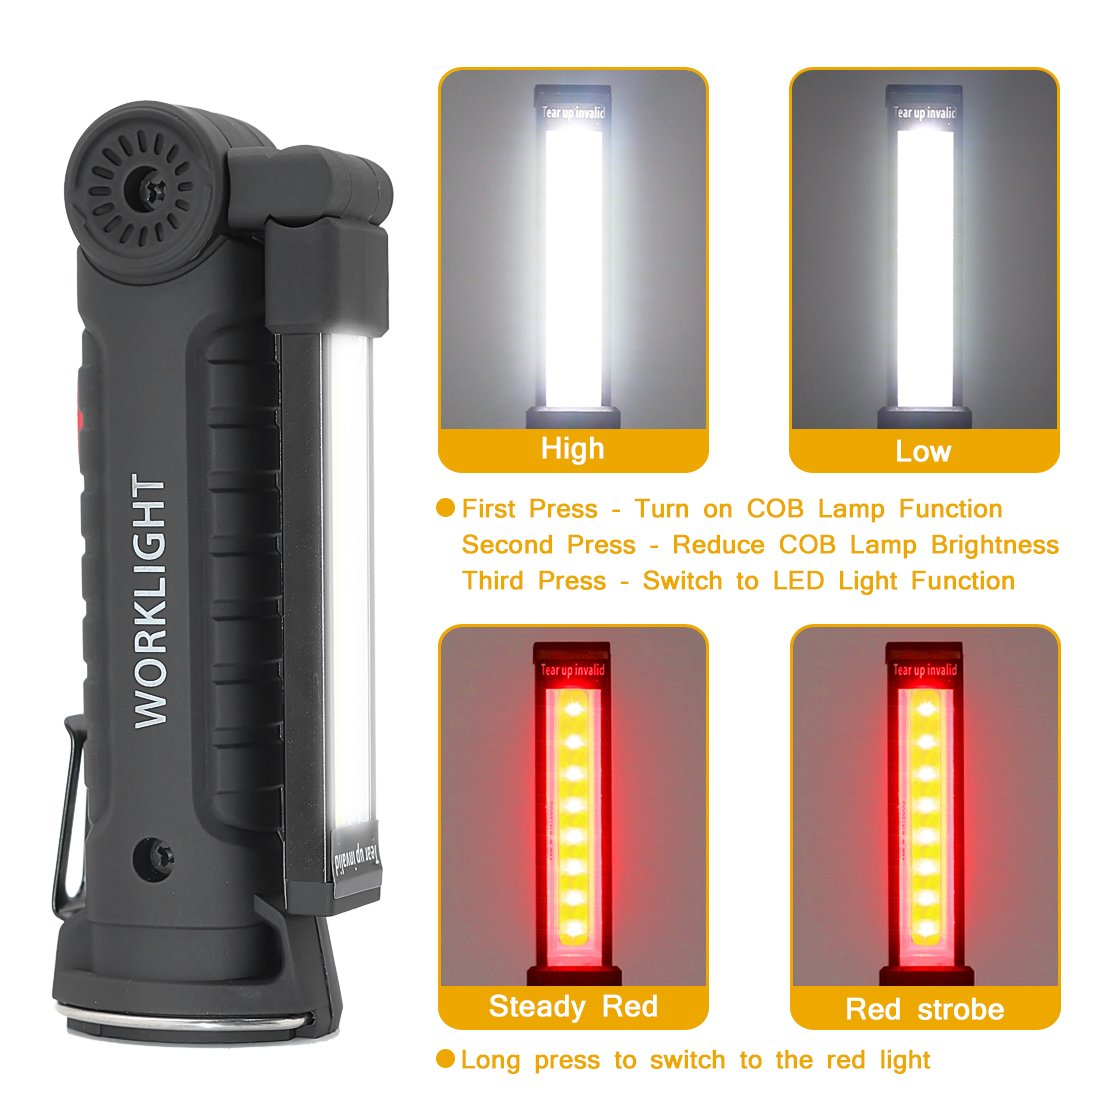 LED Work Light, JIRVY Portable Rechargeable LED COB Flashlight Super Bright 3W Inspection Light with Magnetic Stand for Repairing, Home, Camping, and Emergency(Small) by JIRVY (Image #6)